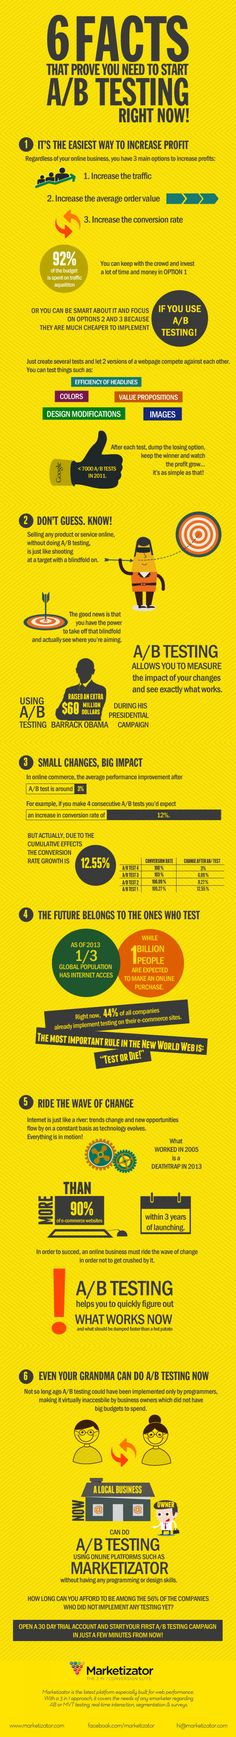 6 Facts That Prove You Need To Start A/B Testing Right Now #Infographic #E-Commerce #Marketing